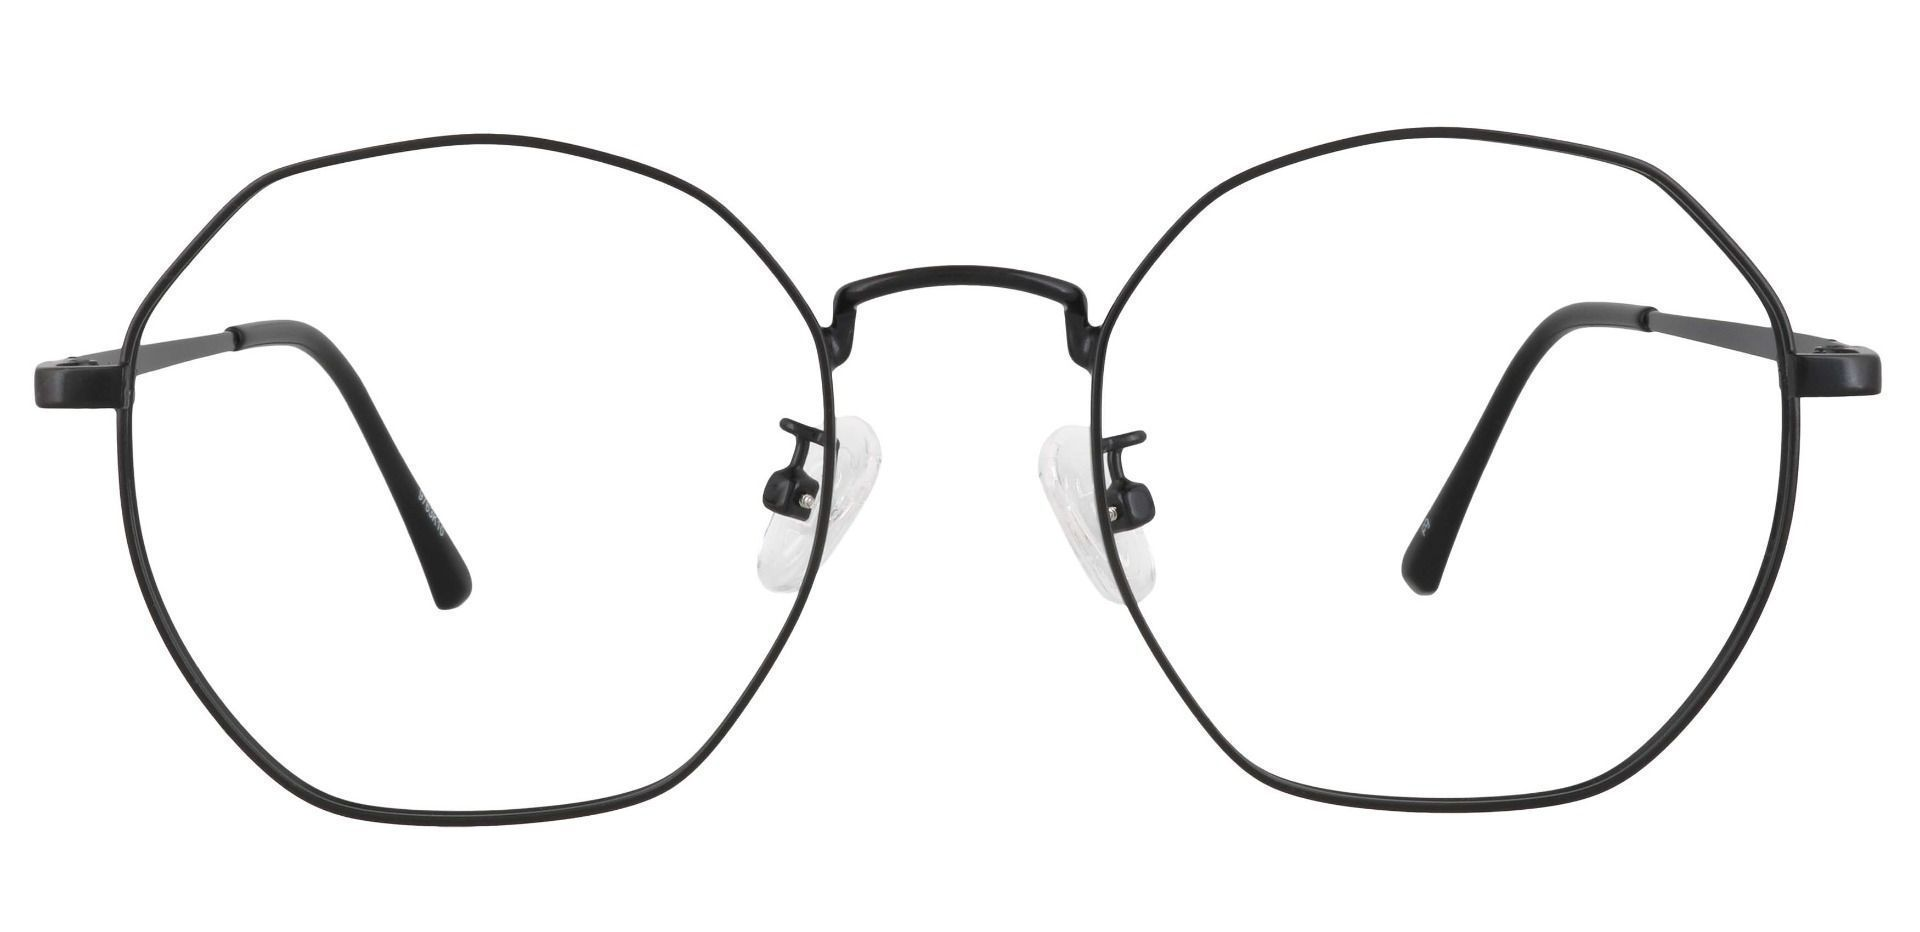 Karina Geometric Prescription Glasses - Black